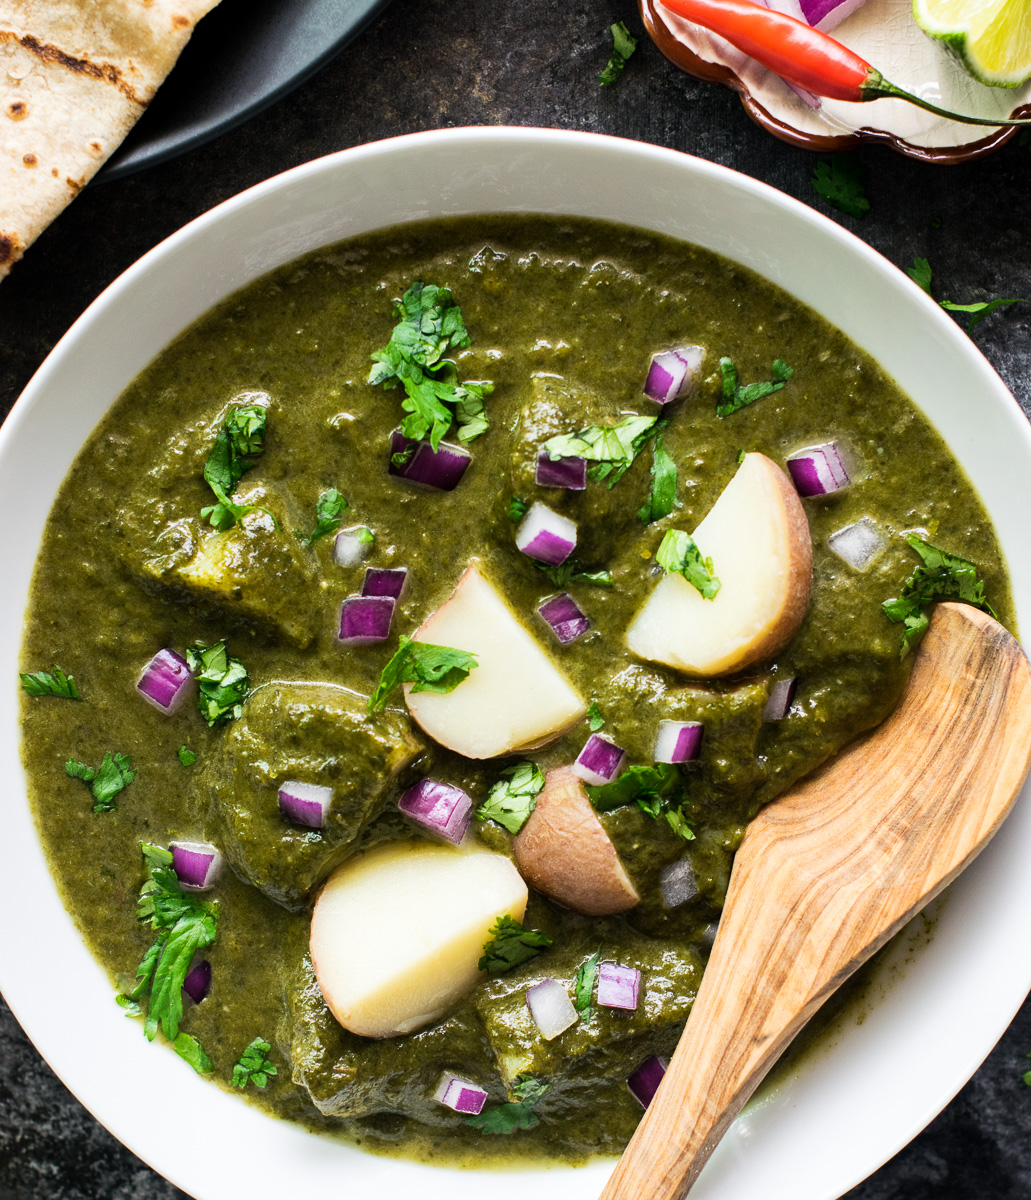 Aloo Palak gravy / Spinach Potato curry - Instant Pot Pressure cooker